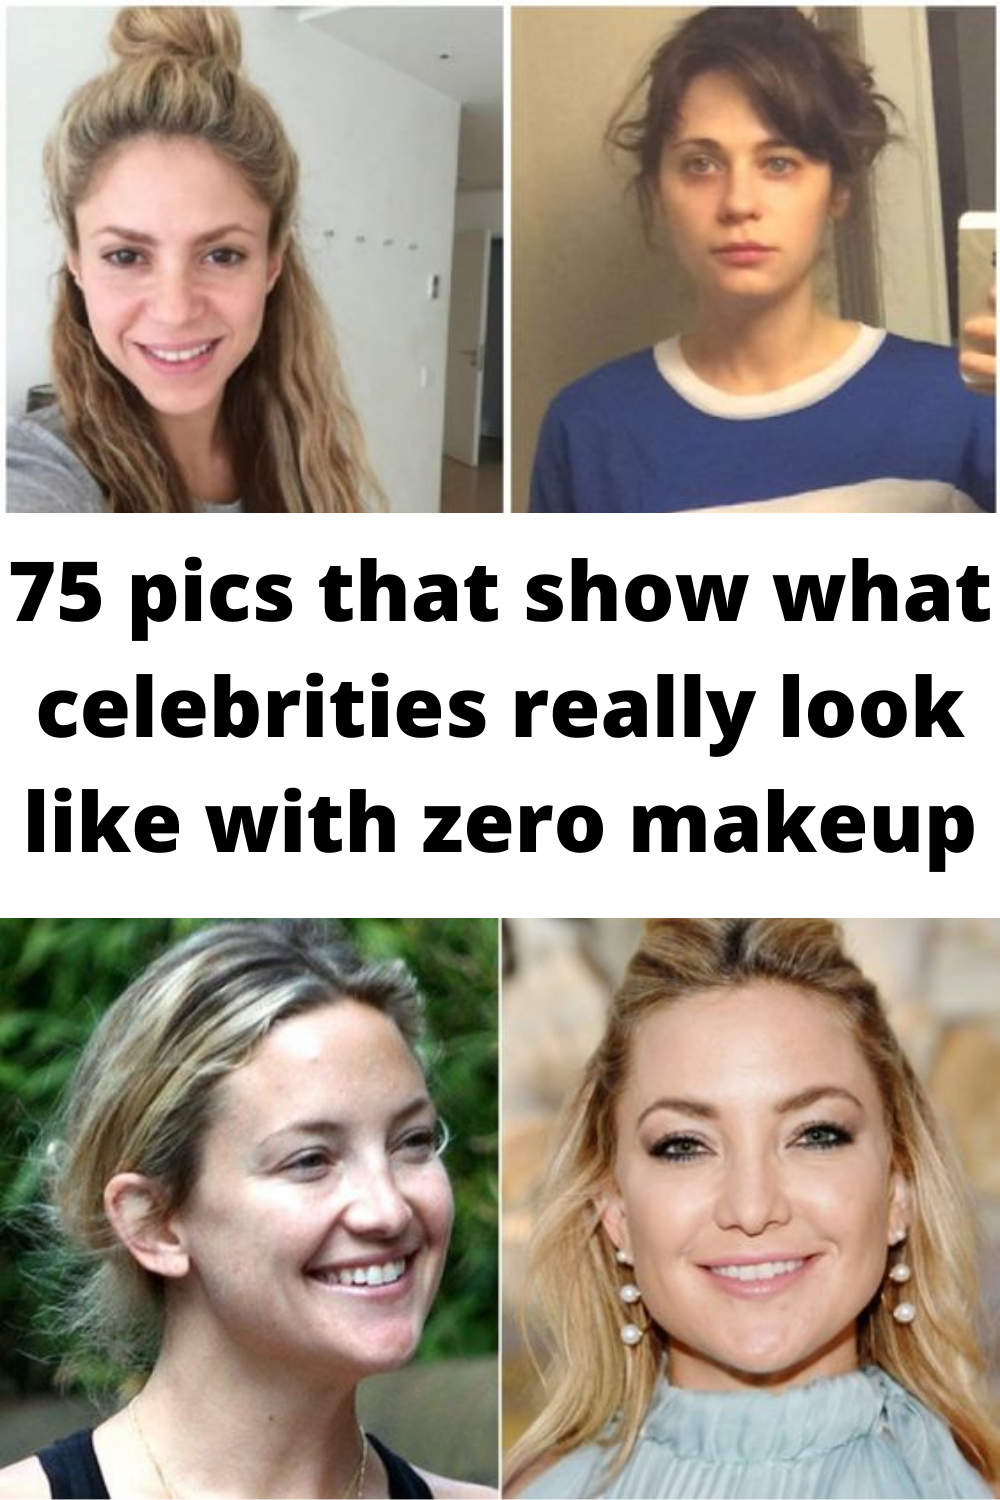 75 #pics that show what #celebrities really #look like with zero #makeup